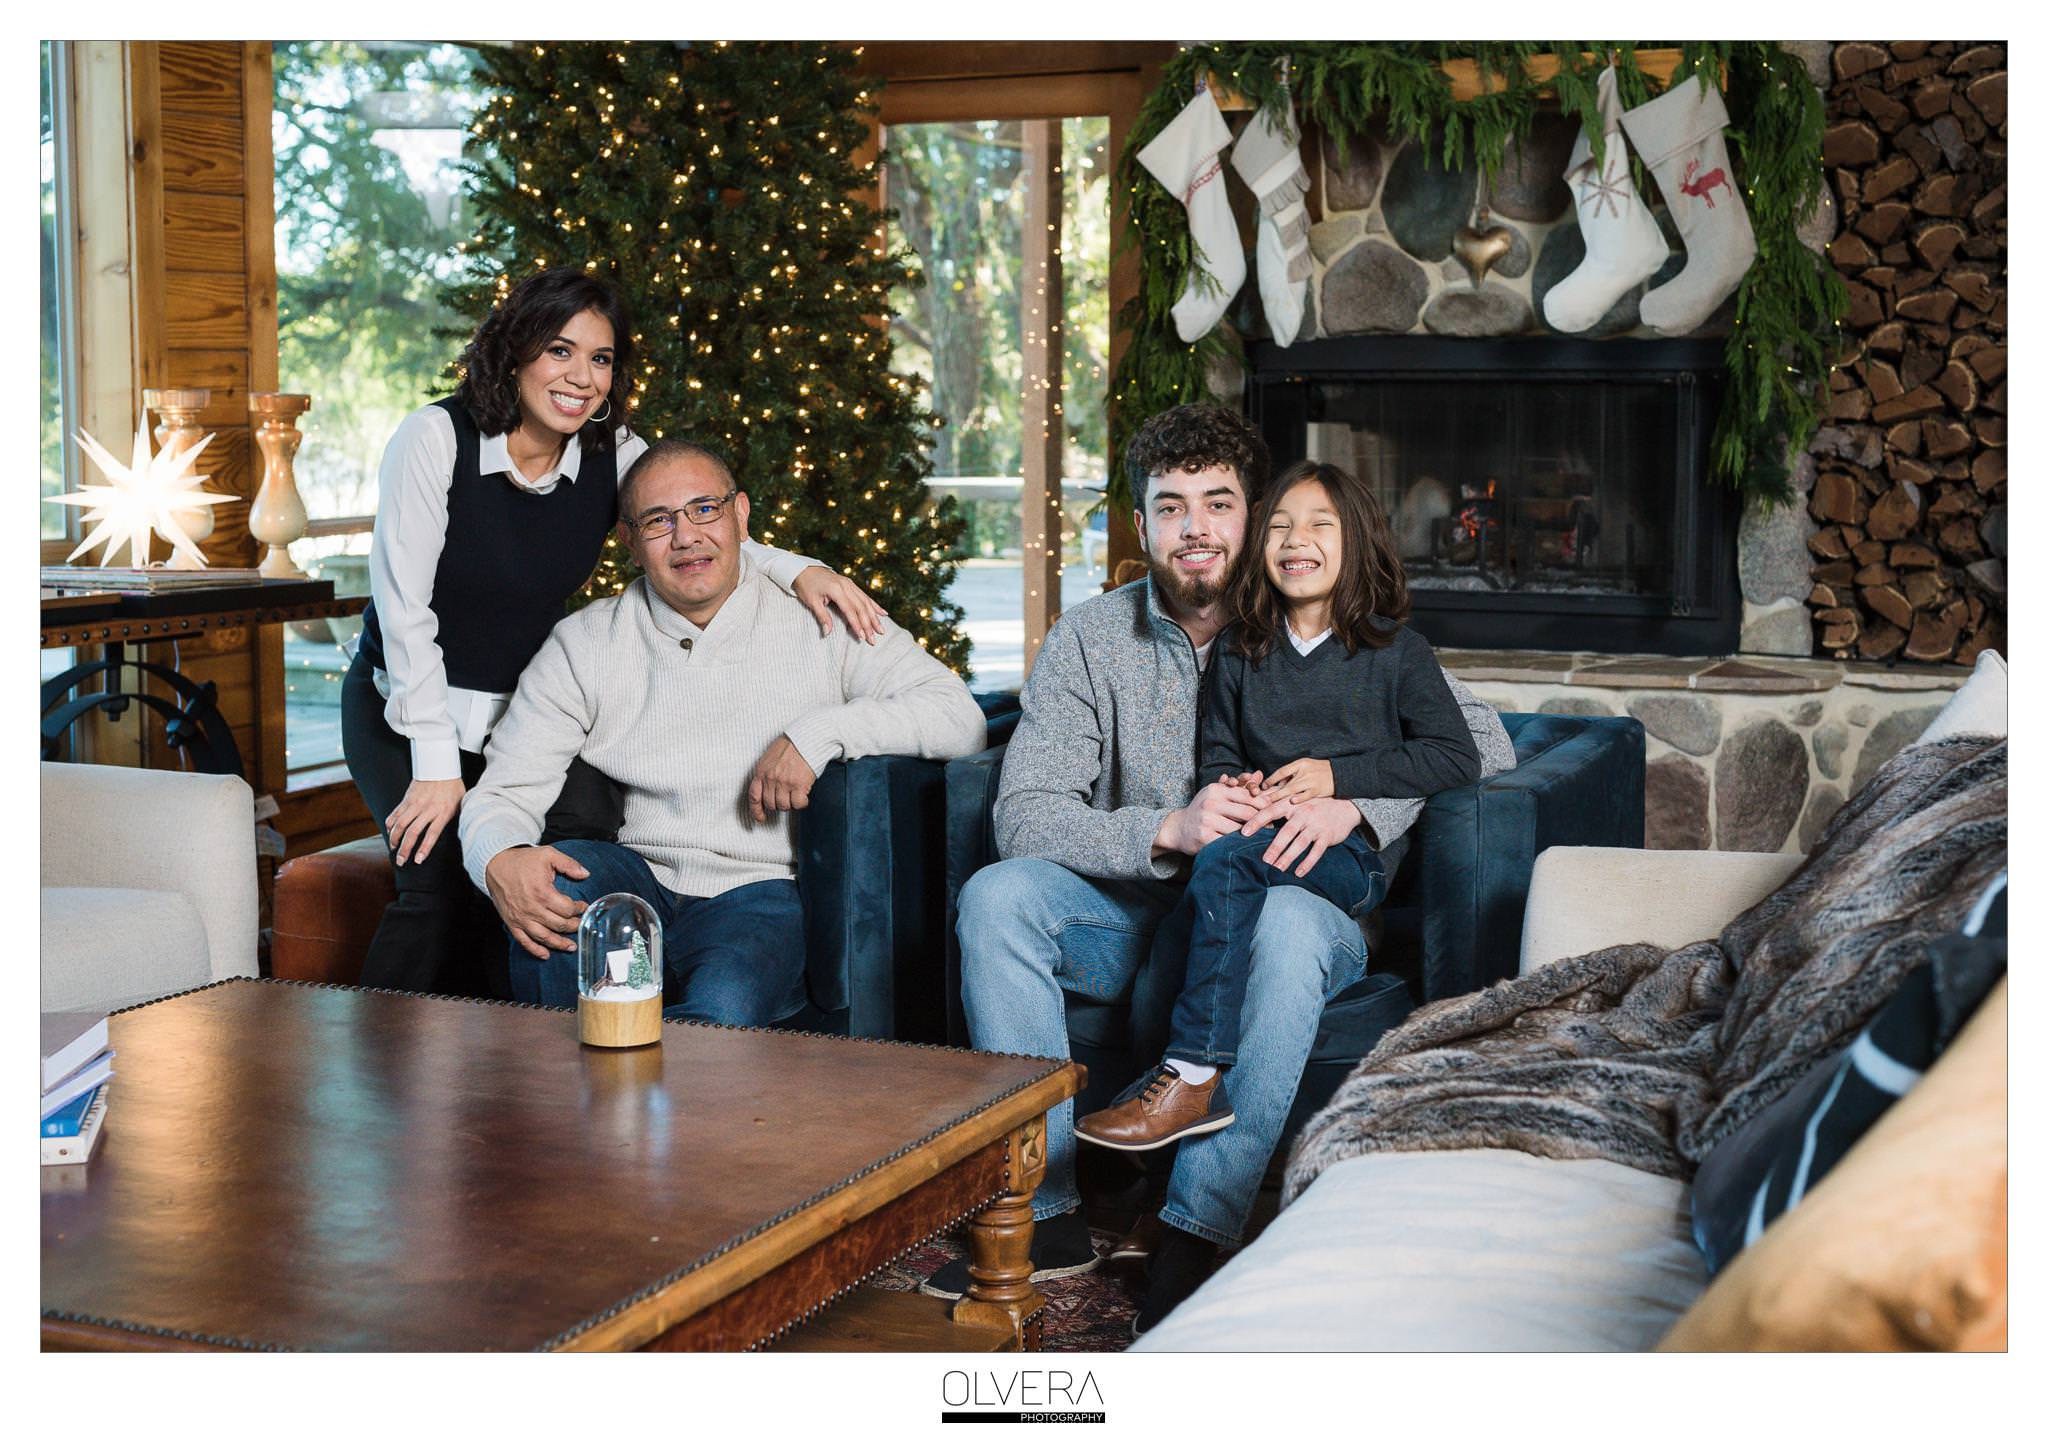 San-Antonio-Mini-Sessions_Christmas-Cabin-Tent_Olvera-Photography-8